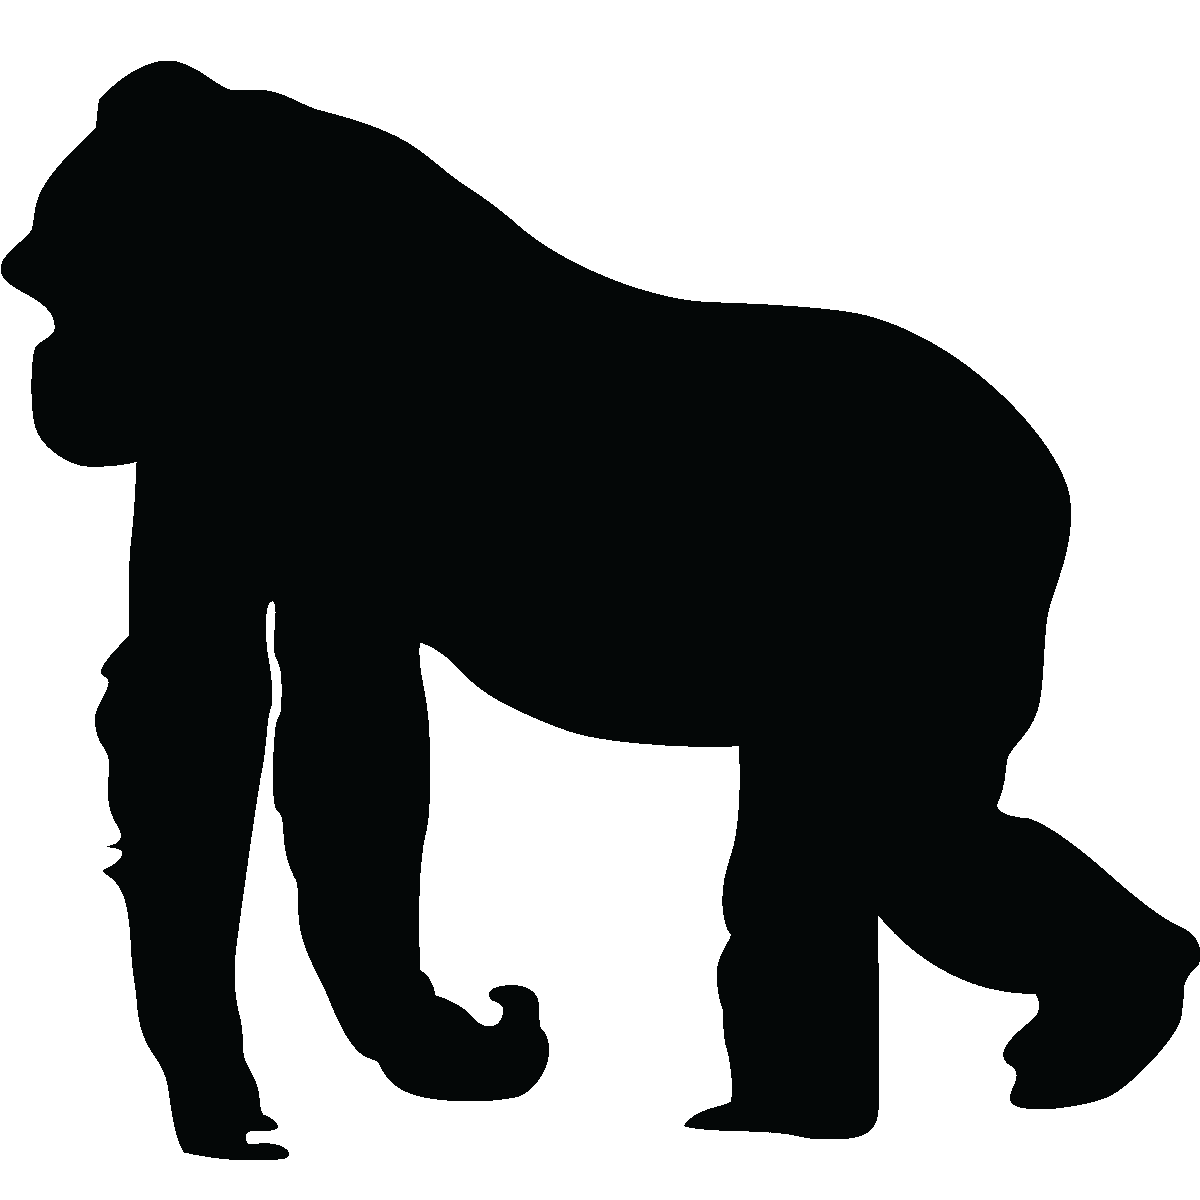 Restaurants clipart silhouette. Gorilla wall pinteres more